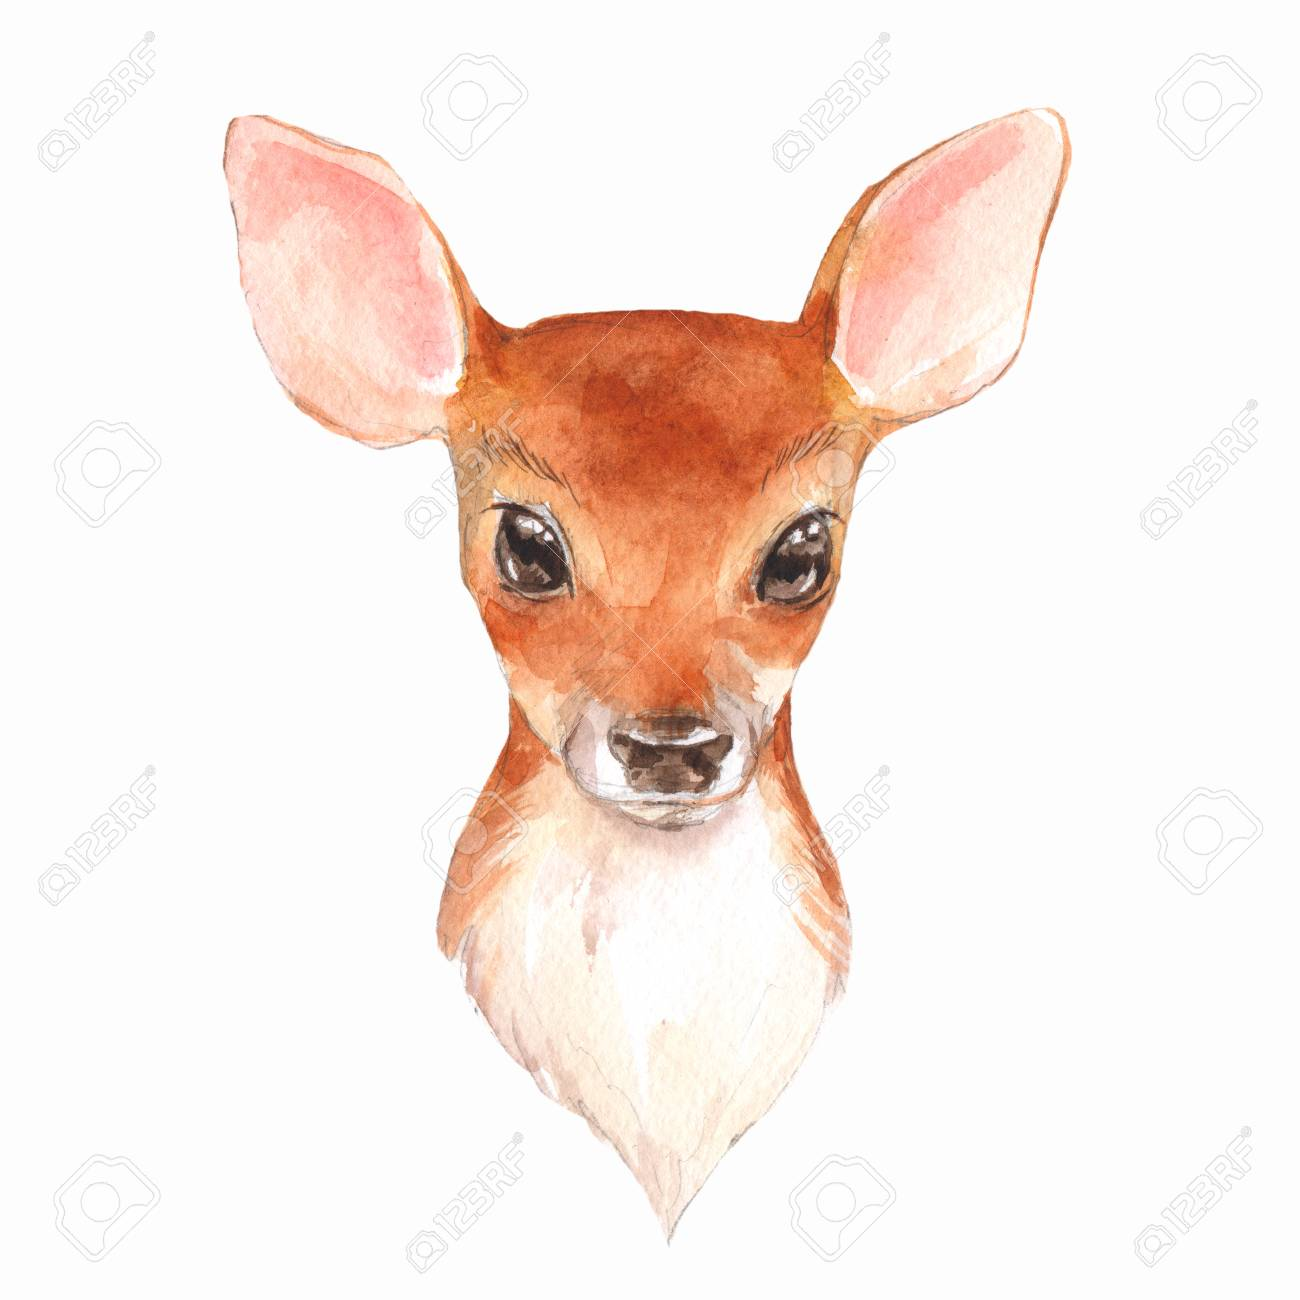 How To Draw A Baby Deer Easy Step By Step